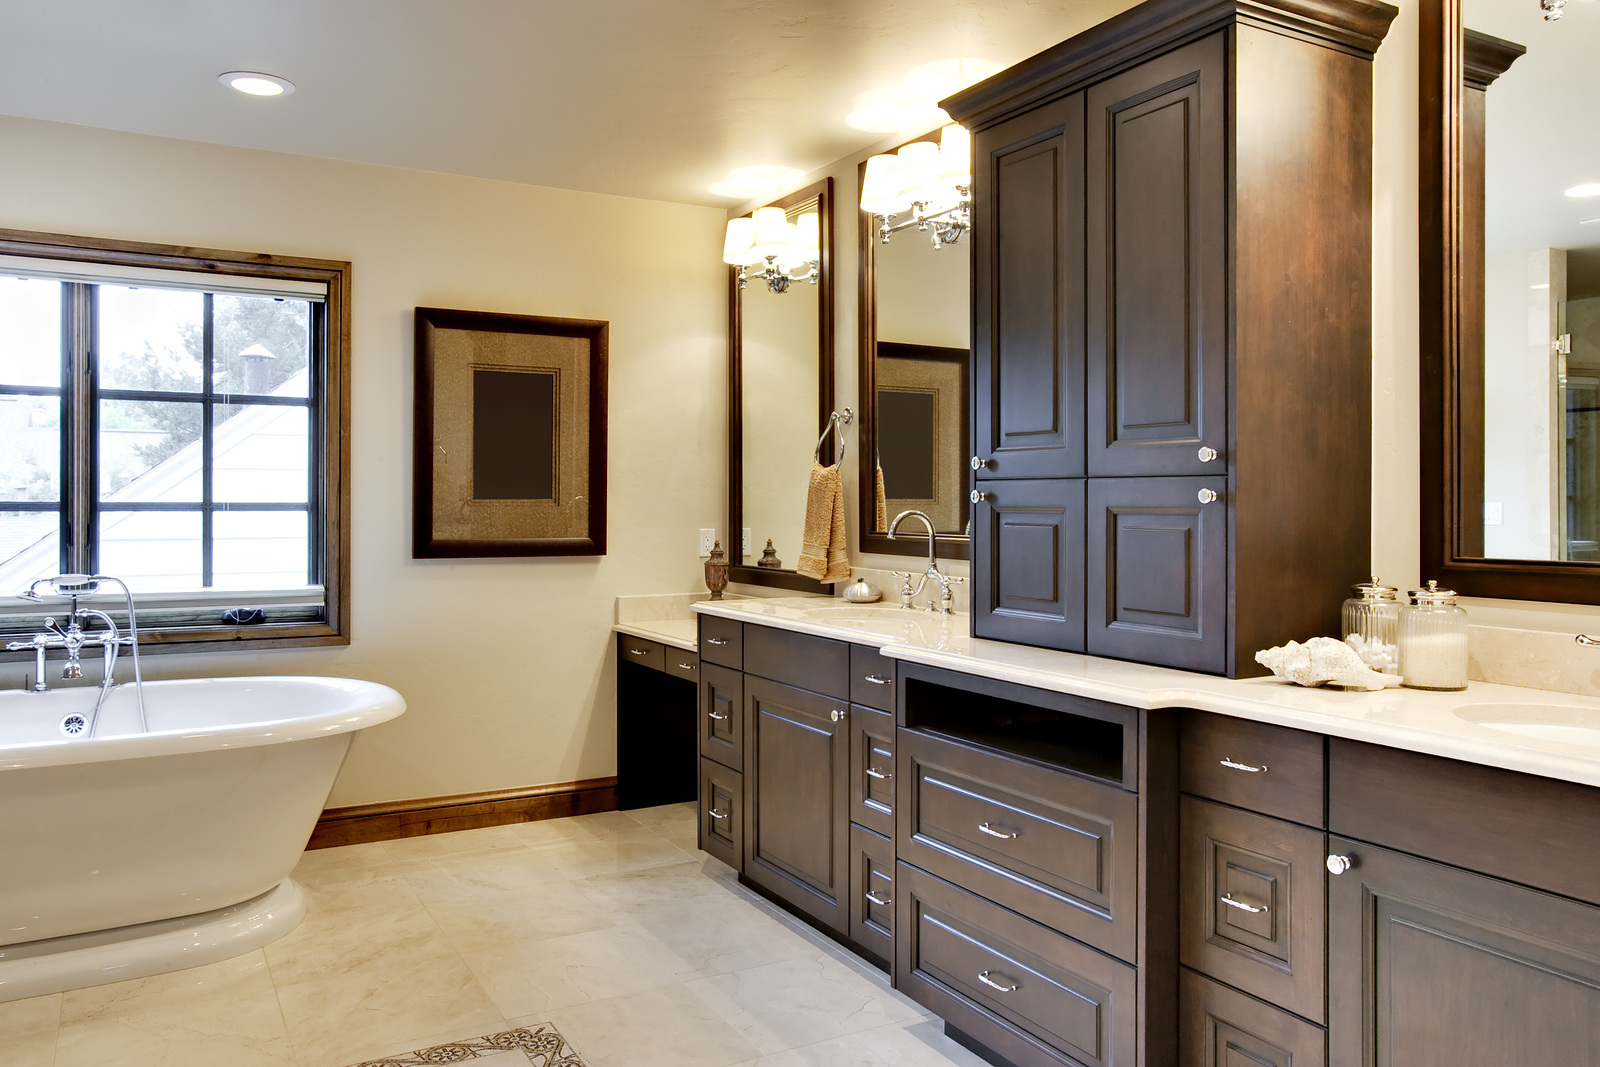 Bathroom with Custom Cabinetry Wood Cabinetry